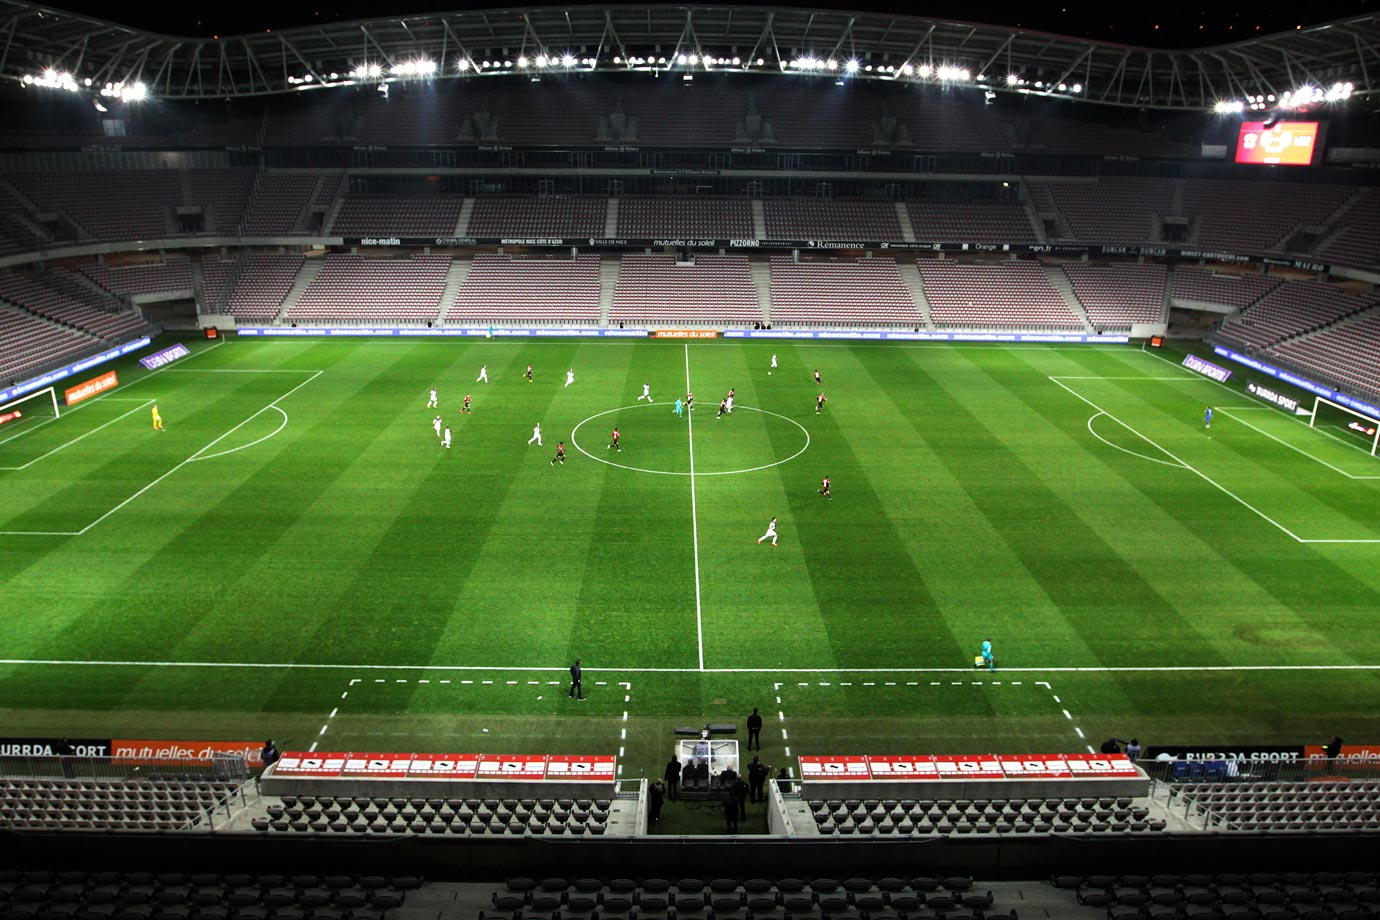 The France Ligue 1 match was played behind closed doors at Allianz Riviera stadium as punishment for Nice fans setting off flares two months earlier against Marseille. Guingamp beat Nice 2-1.